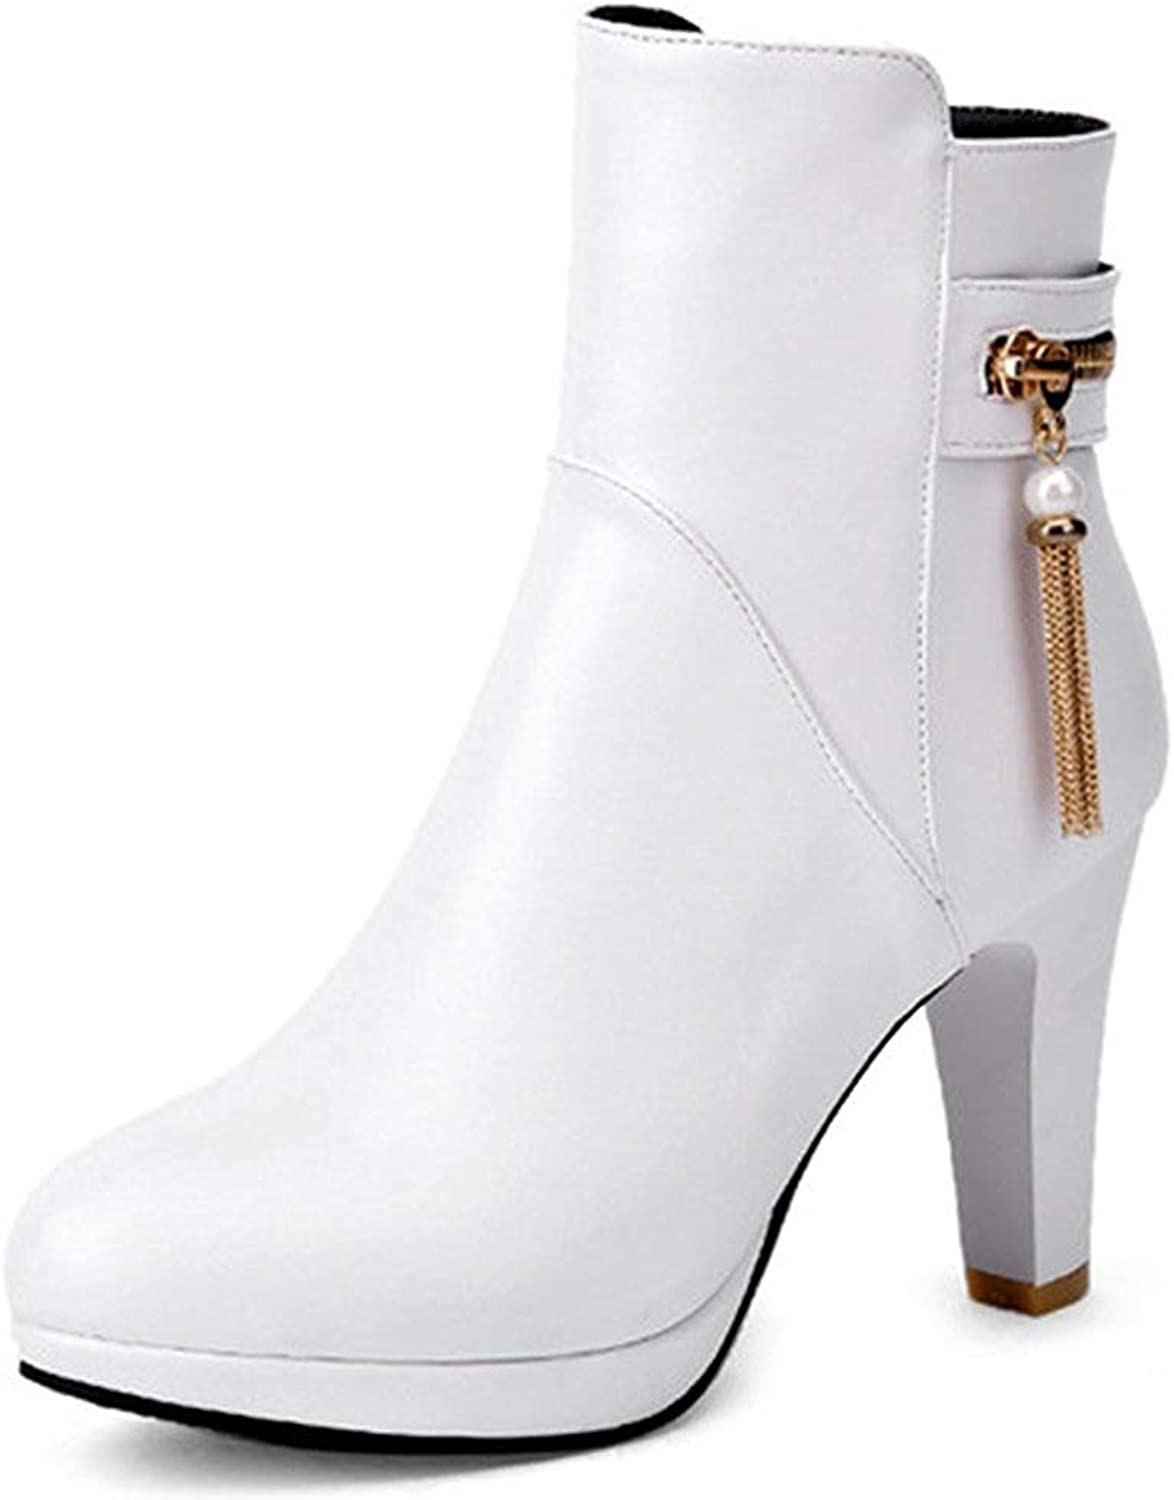 Gcanwea Women's Sexy Fringe Almond Toe Side Zipper Booties Chunky High Heel Platform Ankle Boots Non-Slip On Sale Fashion Comfortable Attractive Leather Winter Ladies Warm White 4 M US Ankle Boots